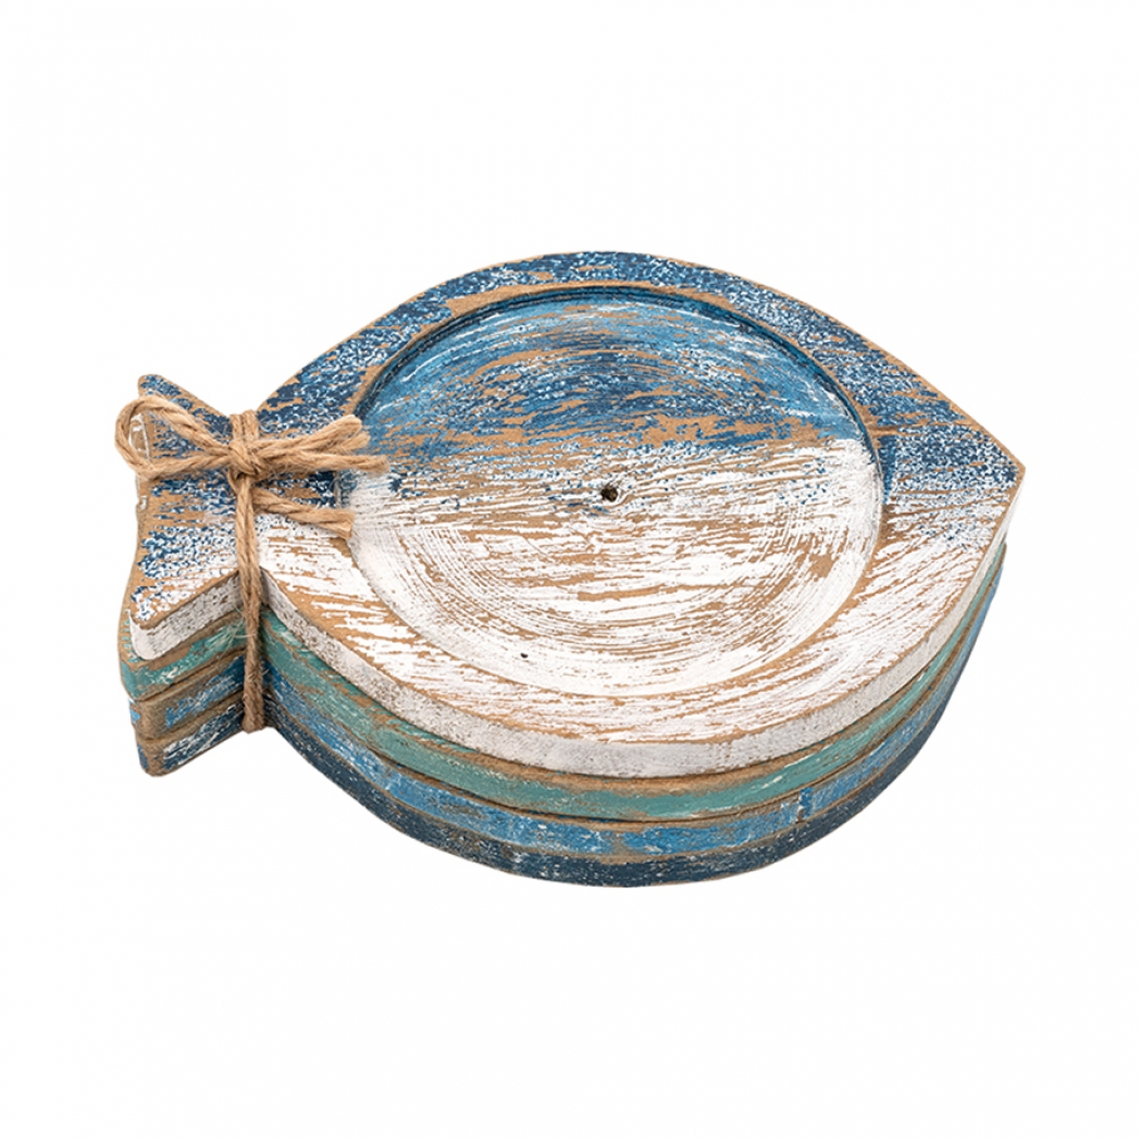 Set of 4 wooden fish coasters